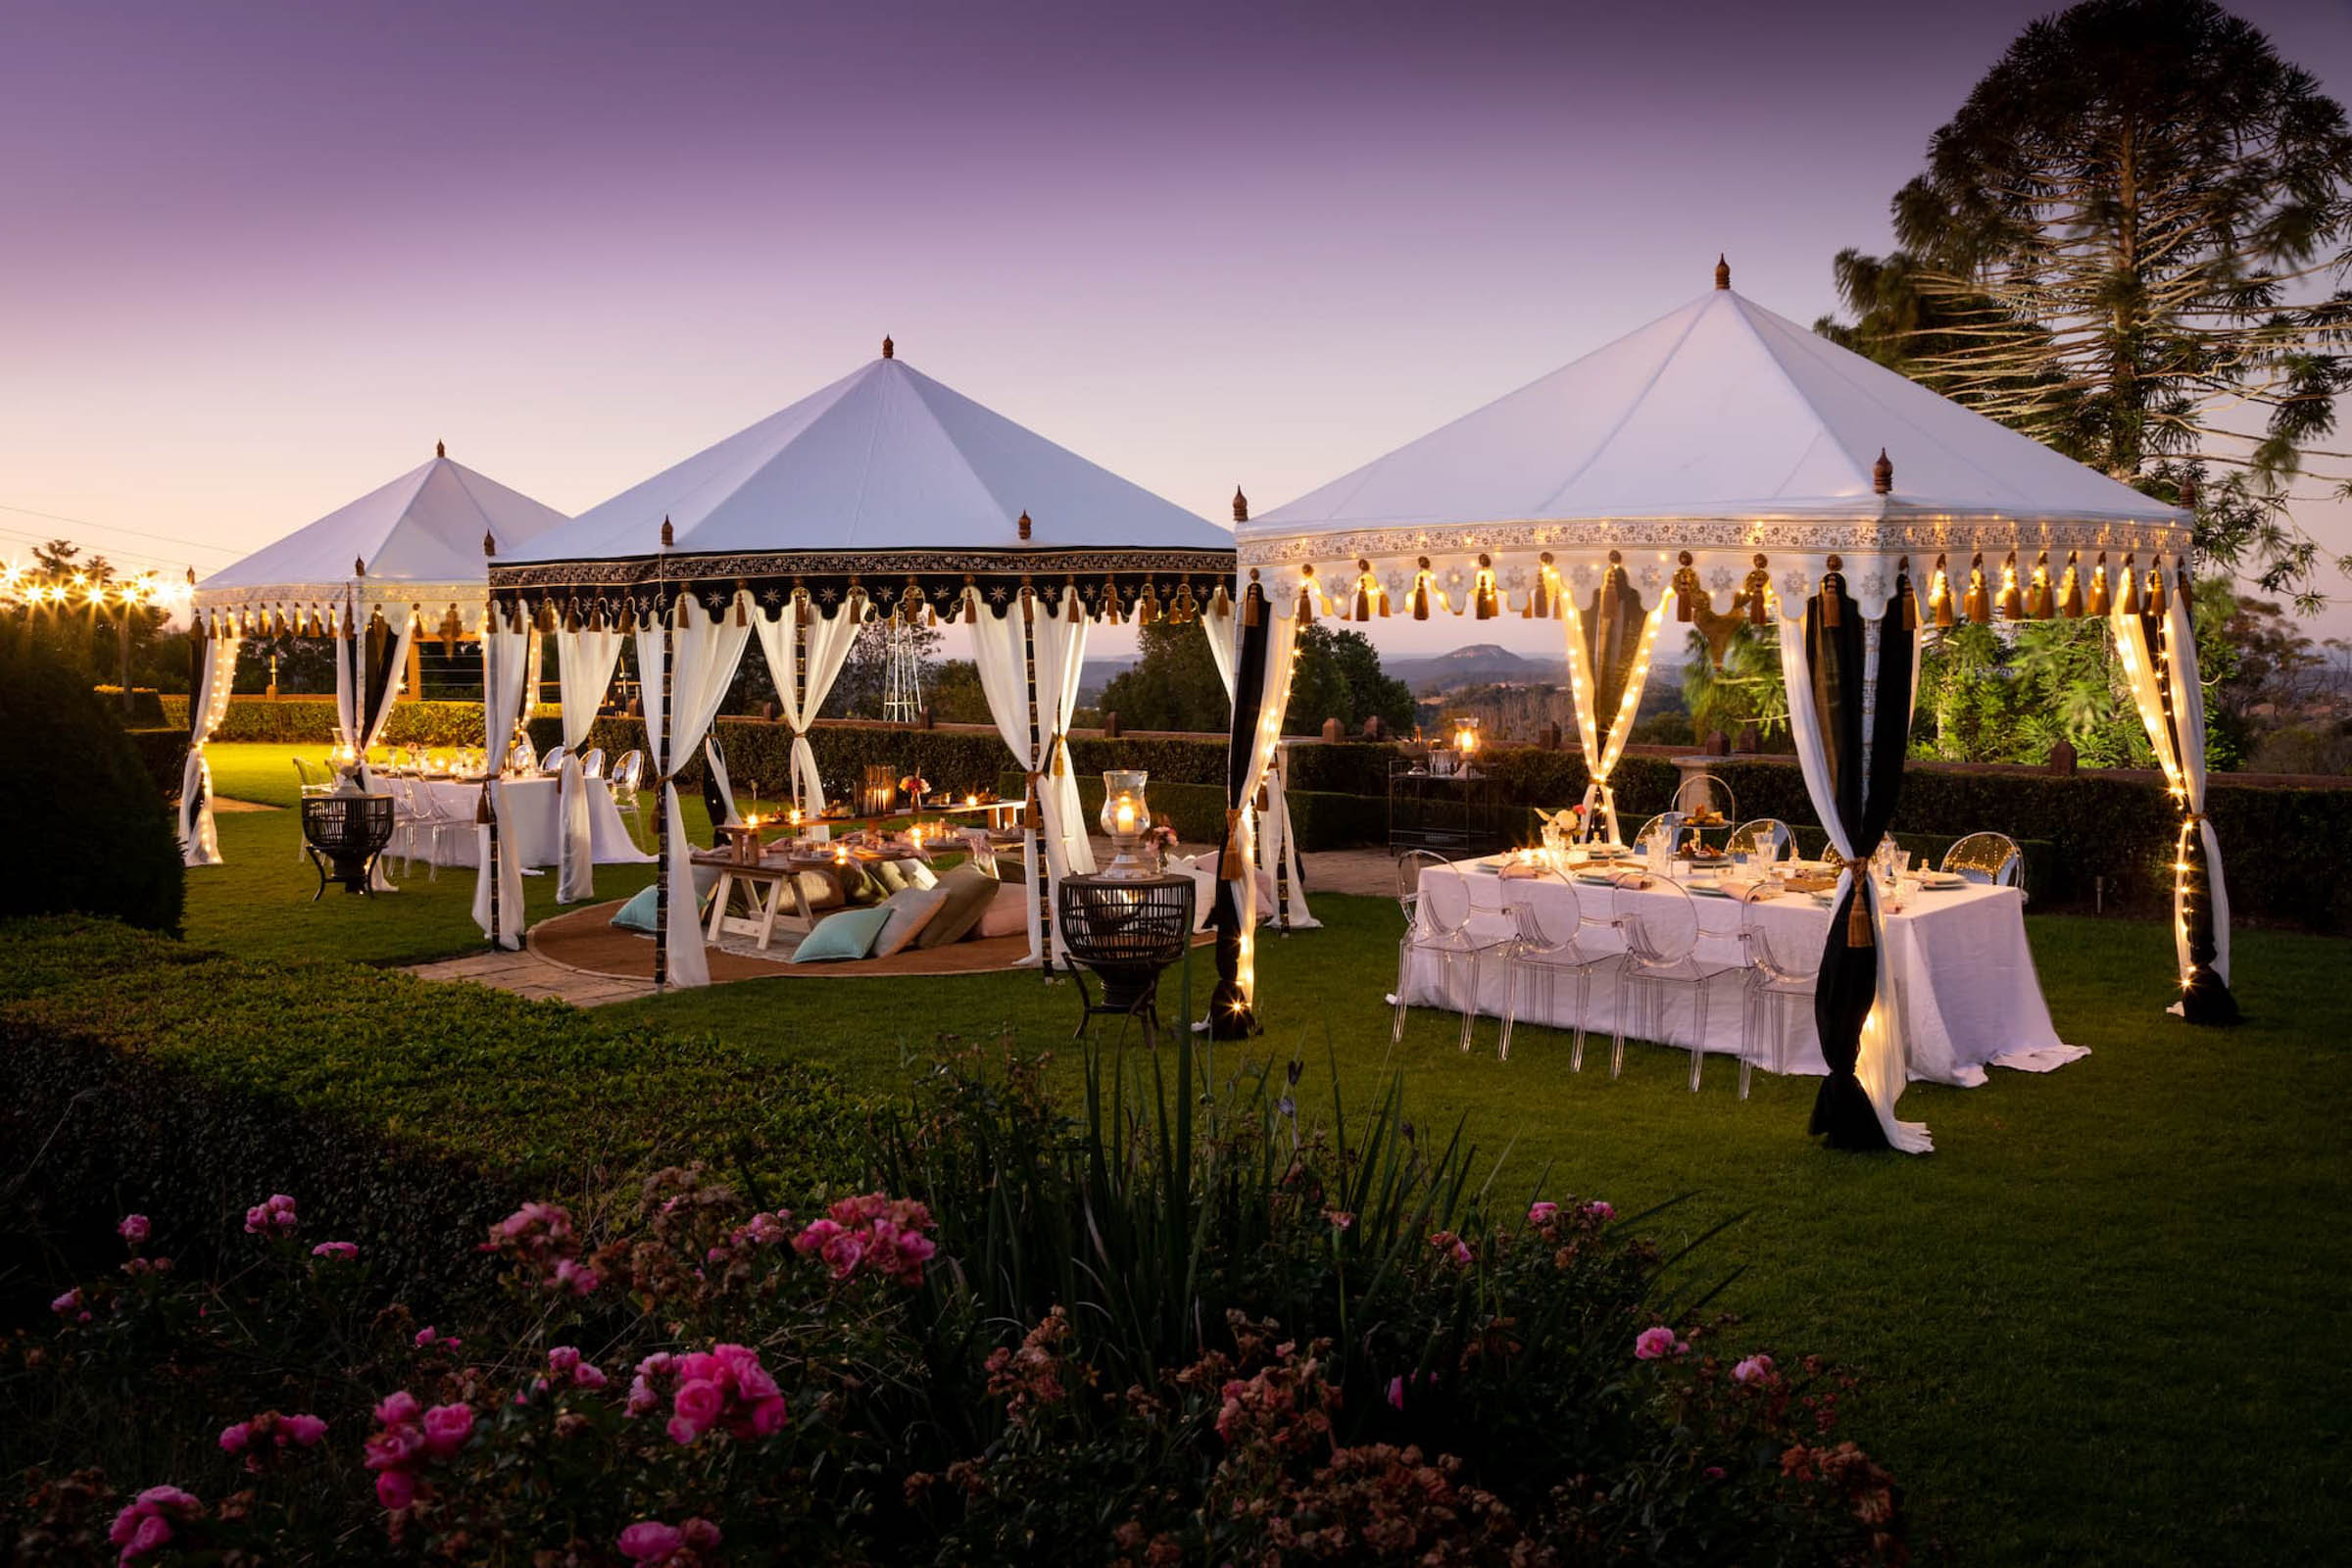 Luxury tent hire specialists in Noosa, Glamacamp Weddings and Events